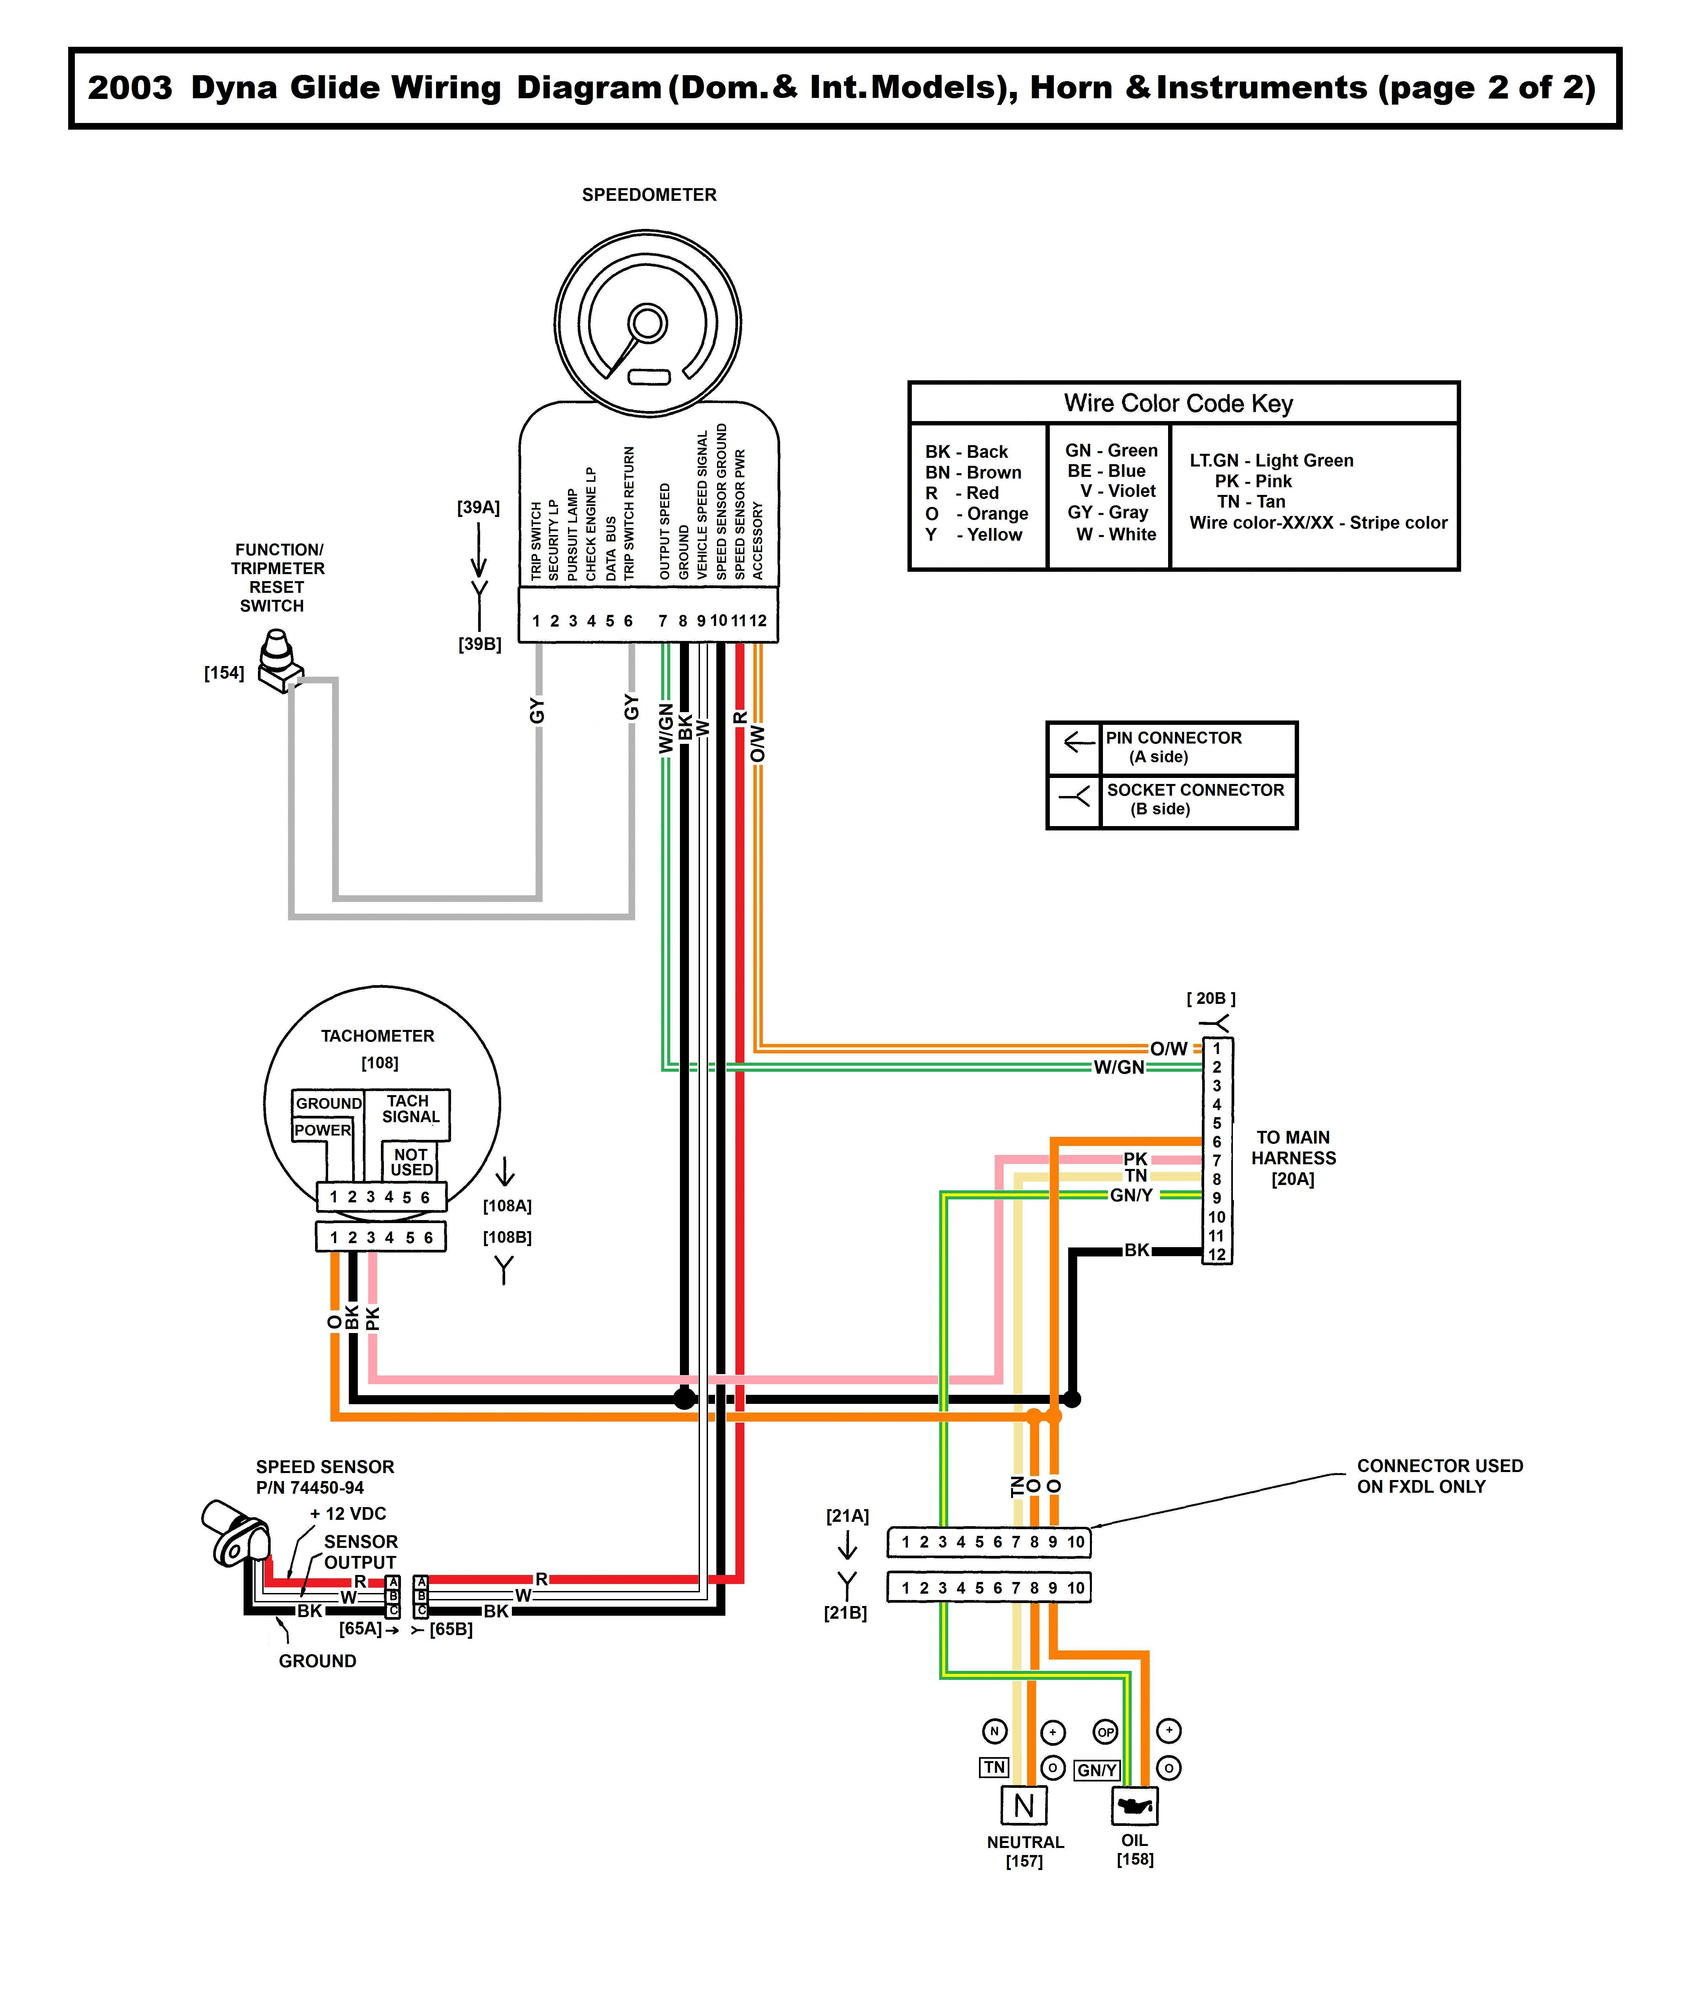 Dynatek Wiring Diagram | Wiring Diagram on